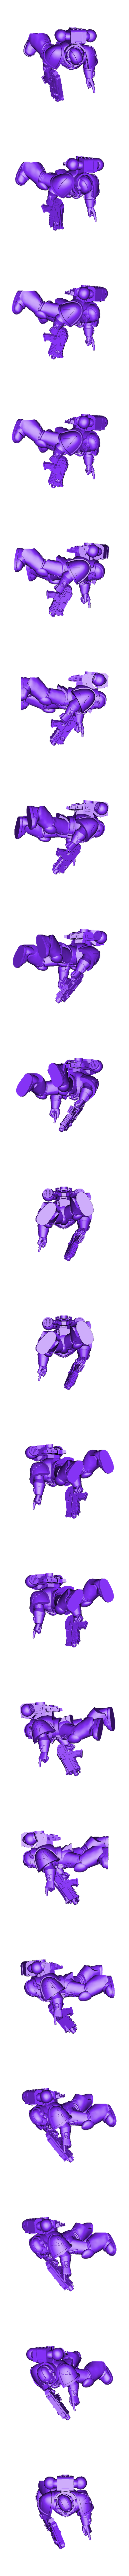 1_Sergeant.stl Download free STL file Angelic Space Soldiers with Heavy Weapons • Template to 3D print, PhysUdo